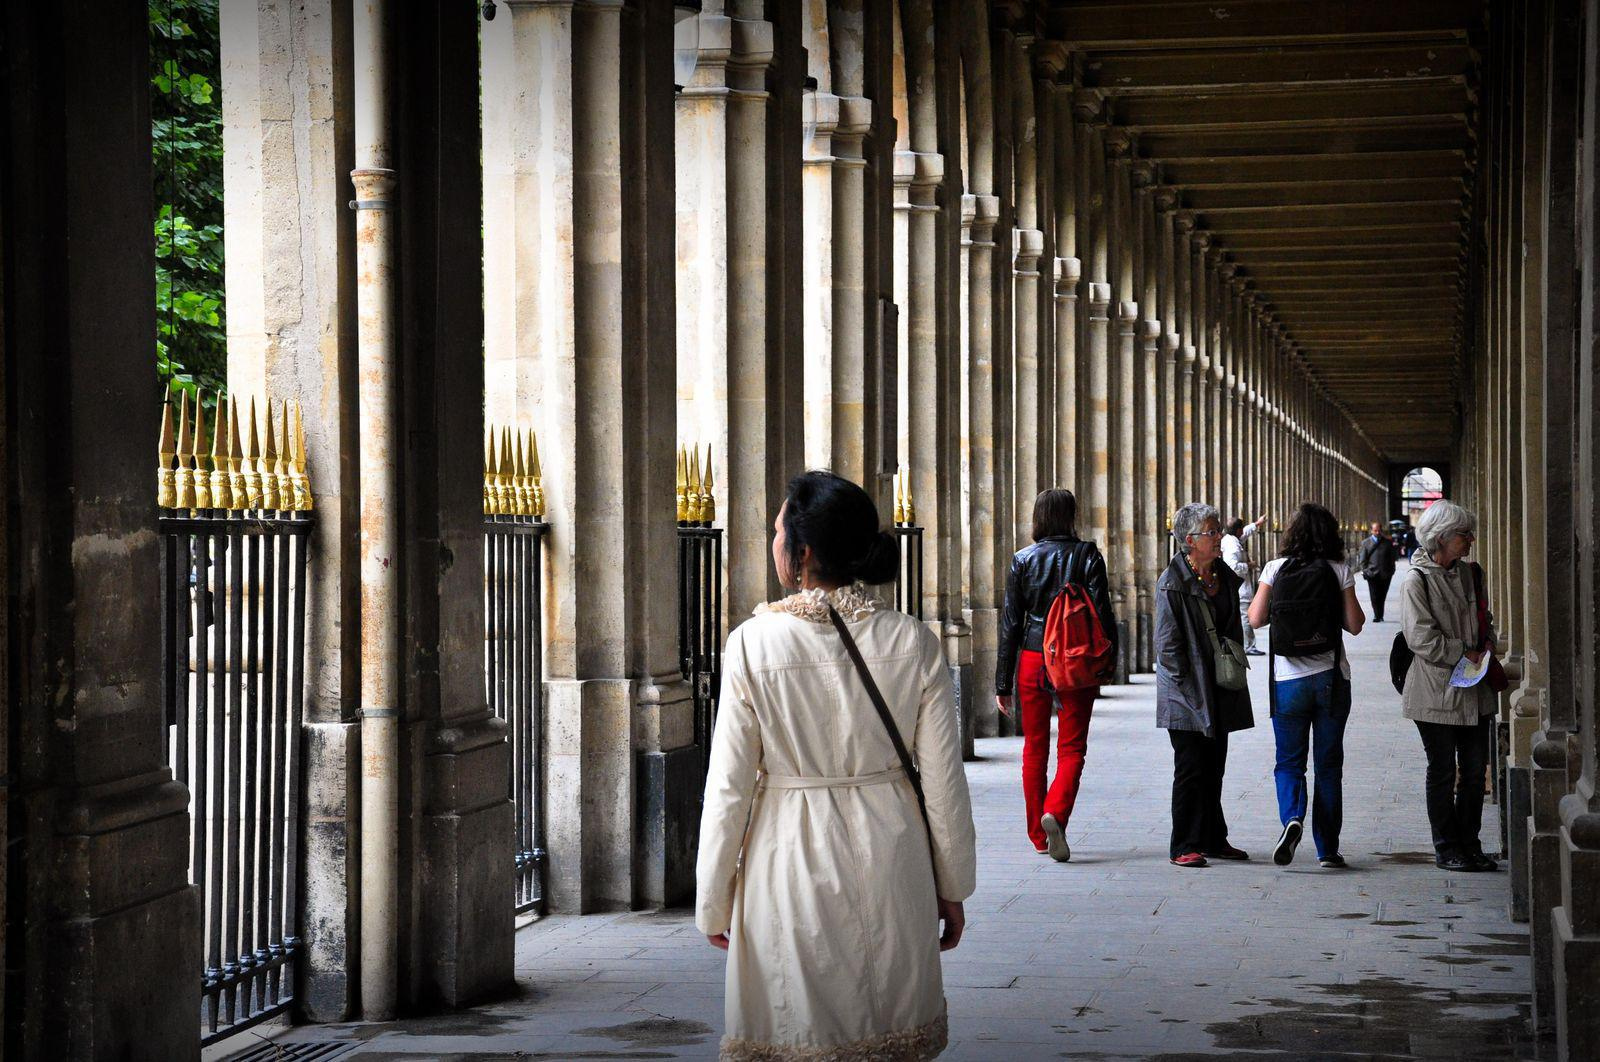 Palais-Royal_Paris (2)